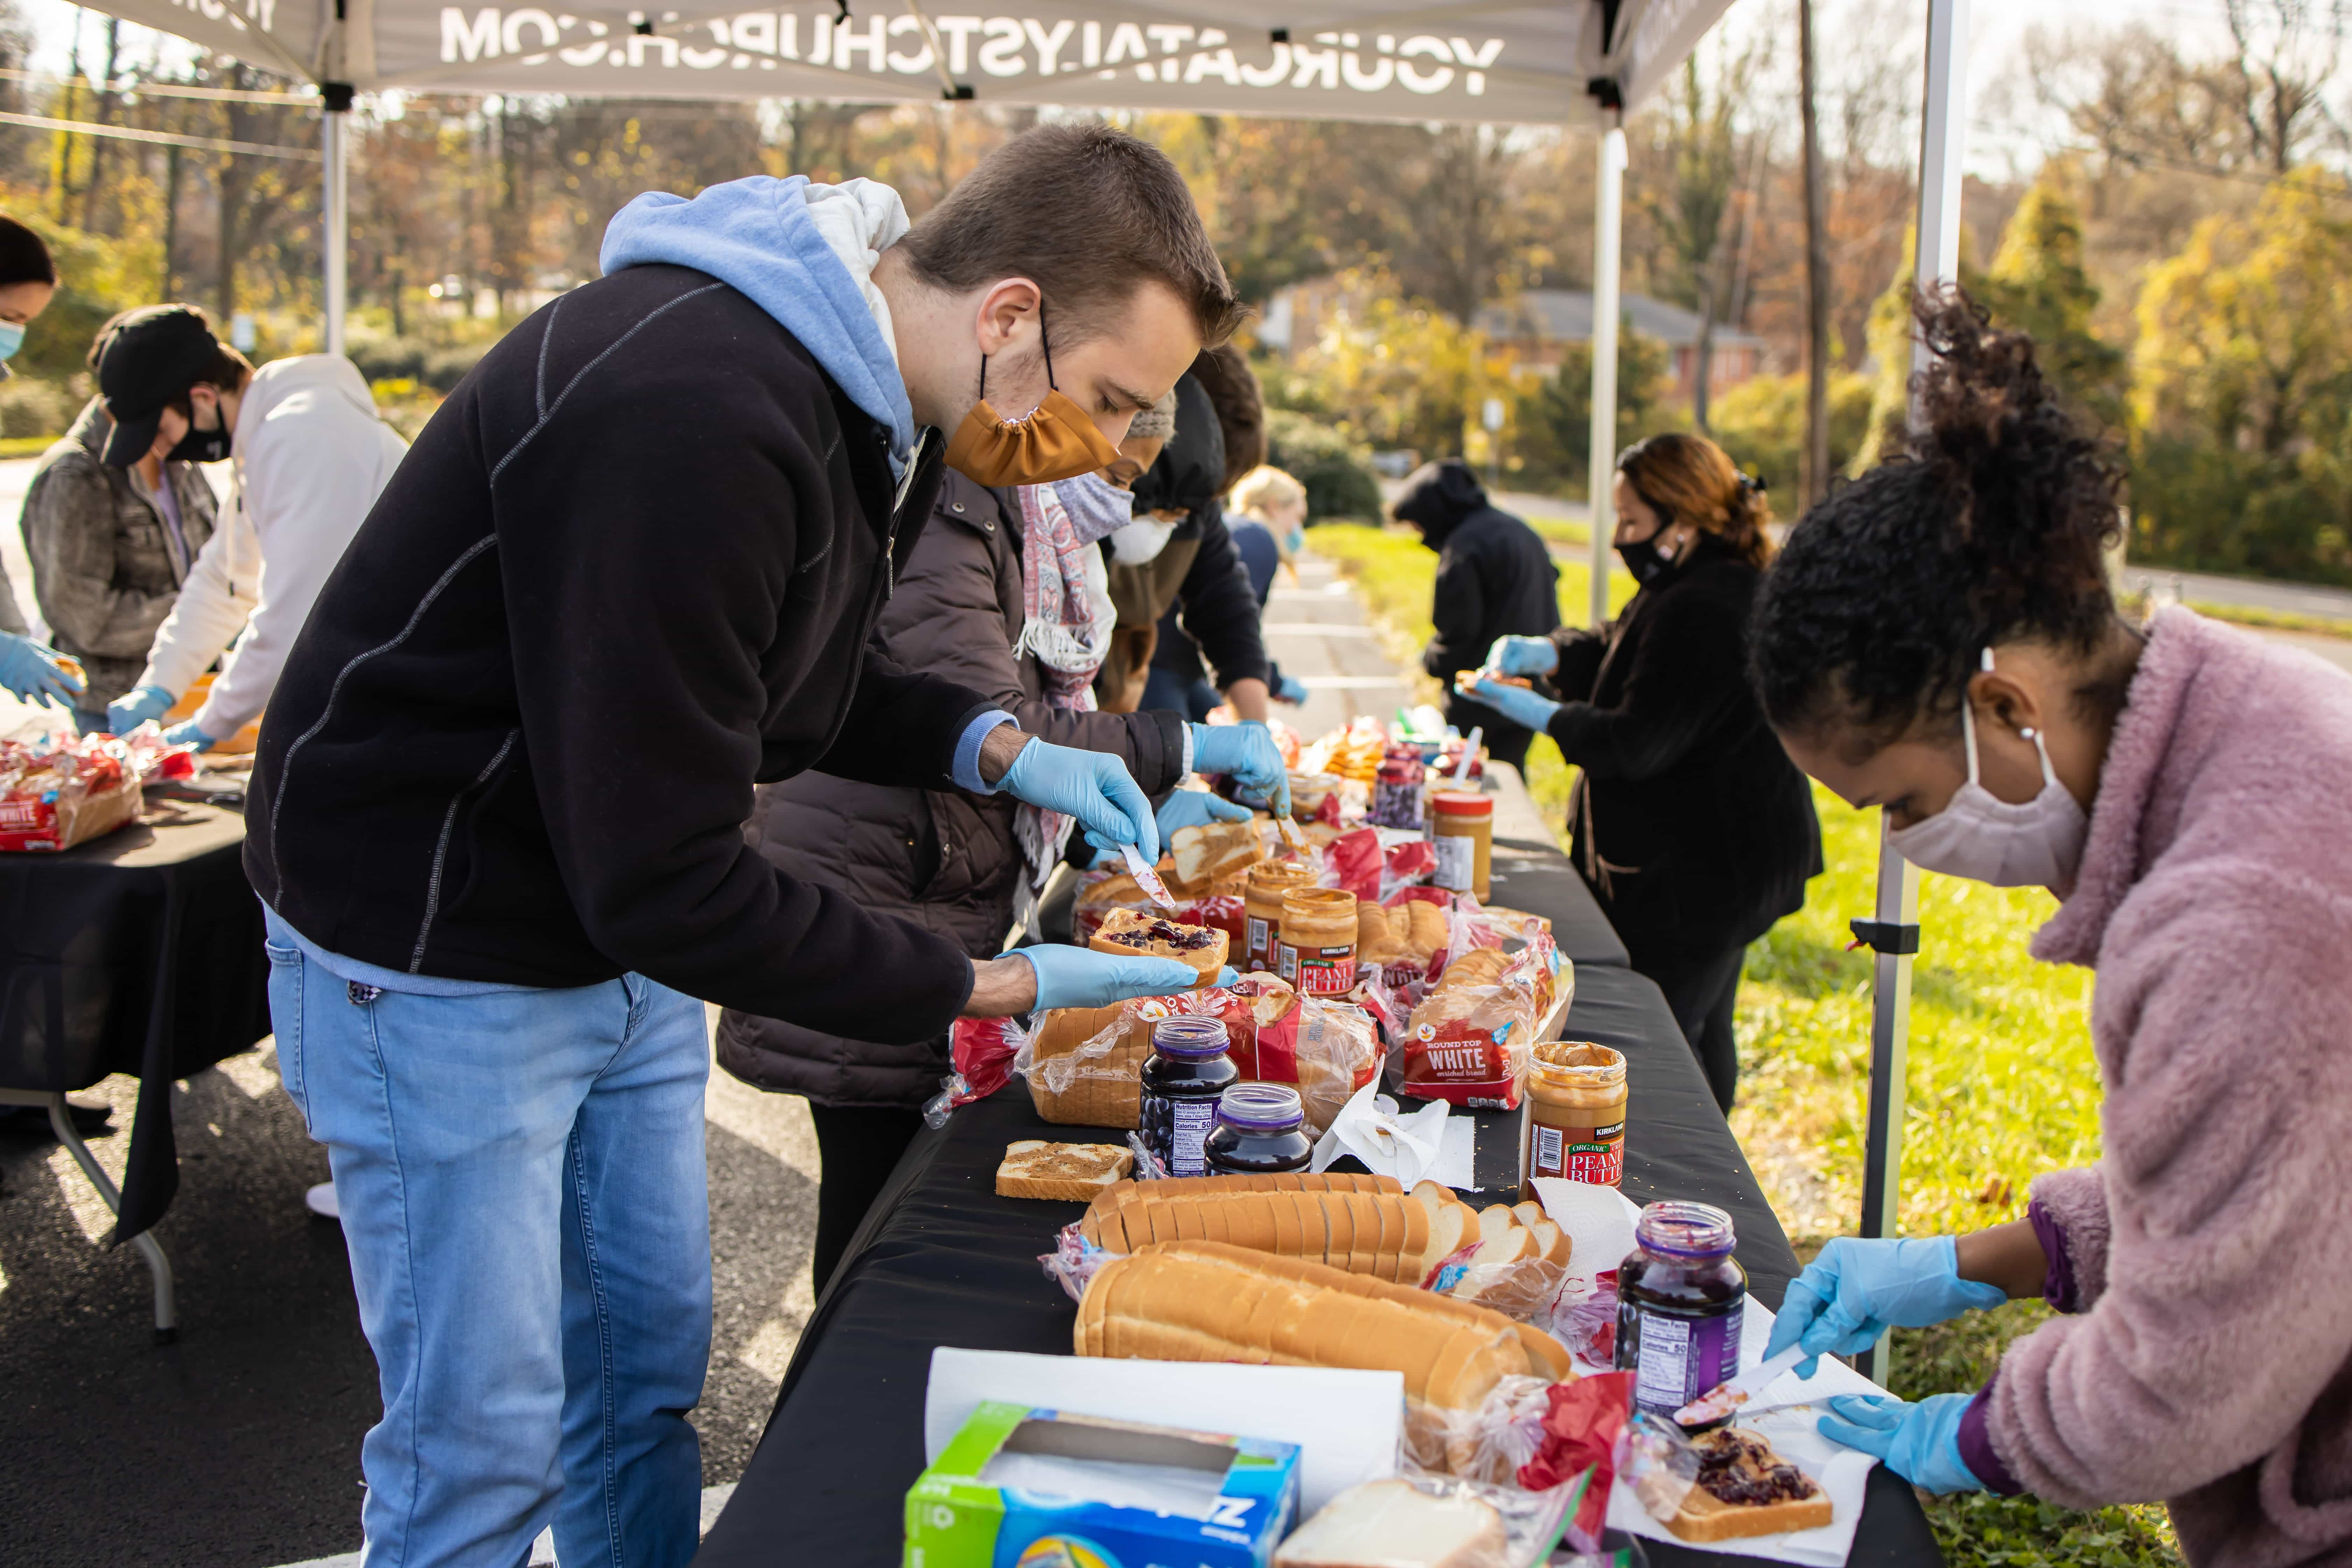 a photo of catalyst team making sandwiches to donate.